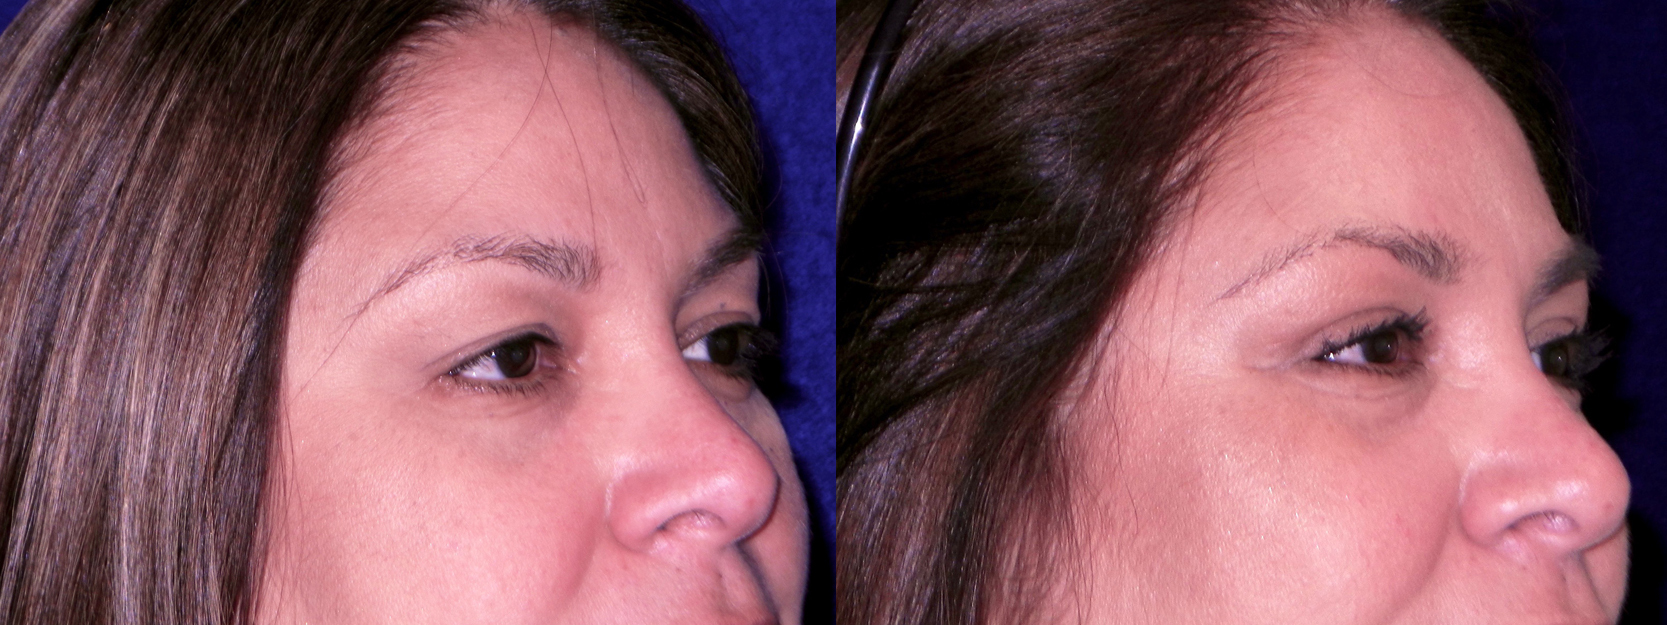 Right 3/4 View Close Up - Upper Blepharoplasty